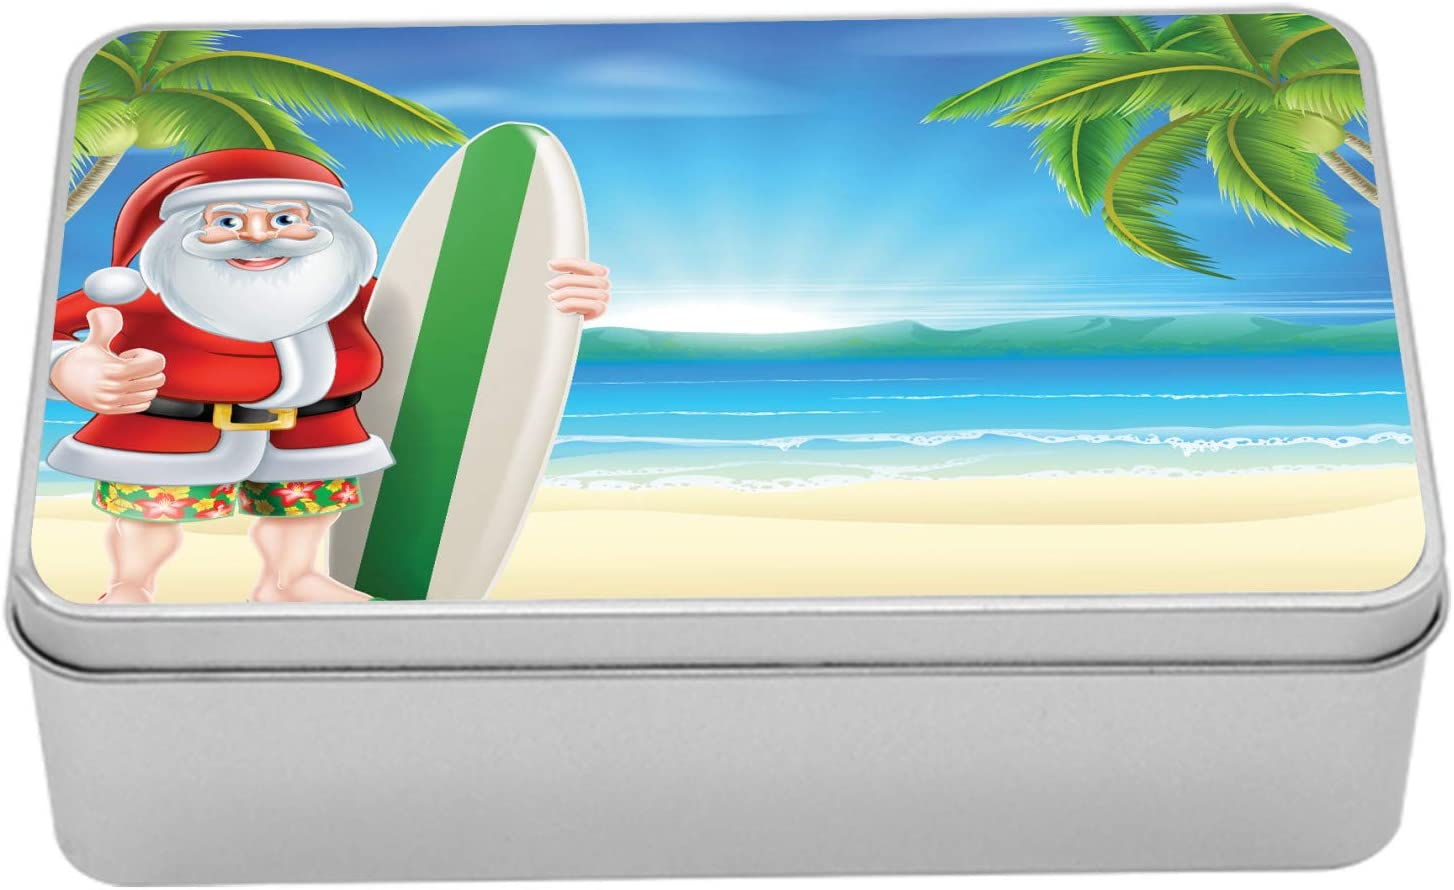 Ambesonne Christmas Tin Box Santa Claus on Super sale period limited Some reservation Beac with Trunks The